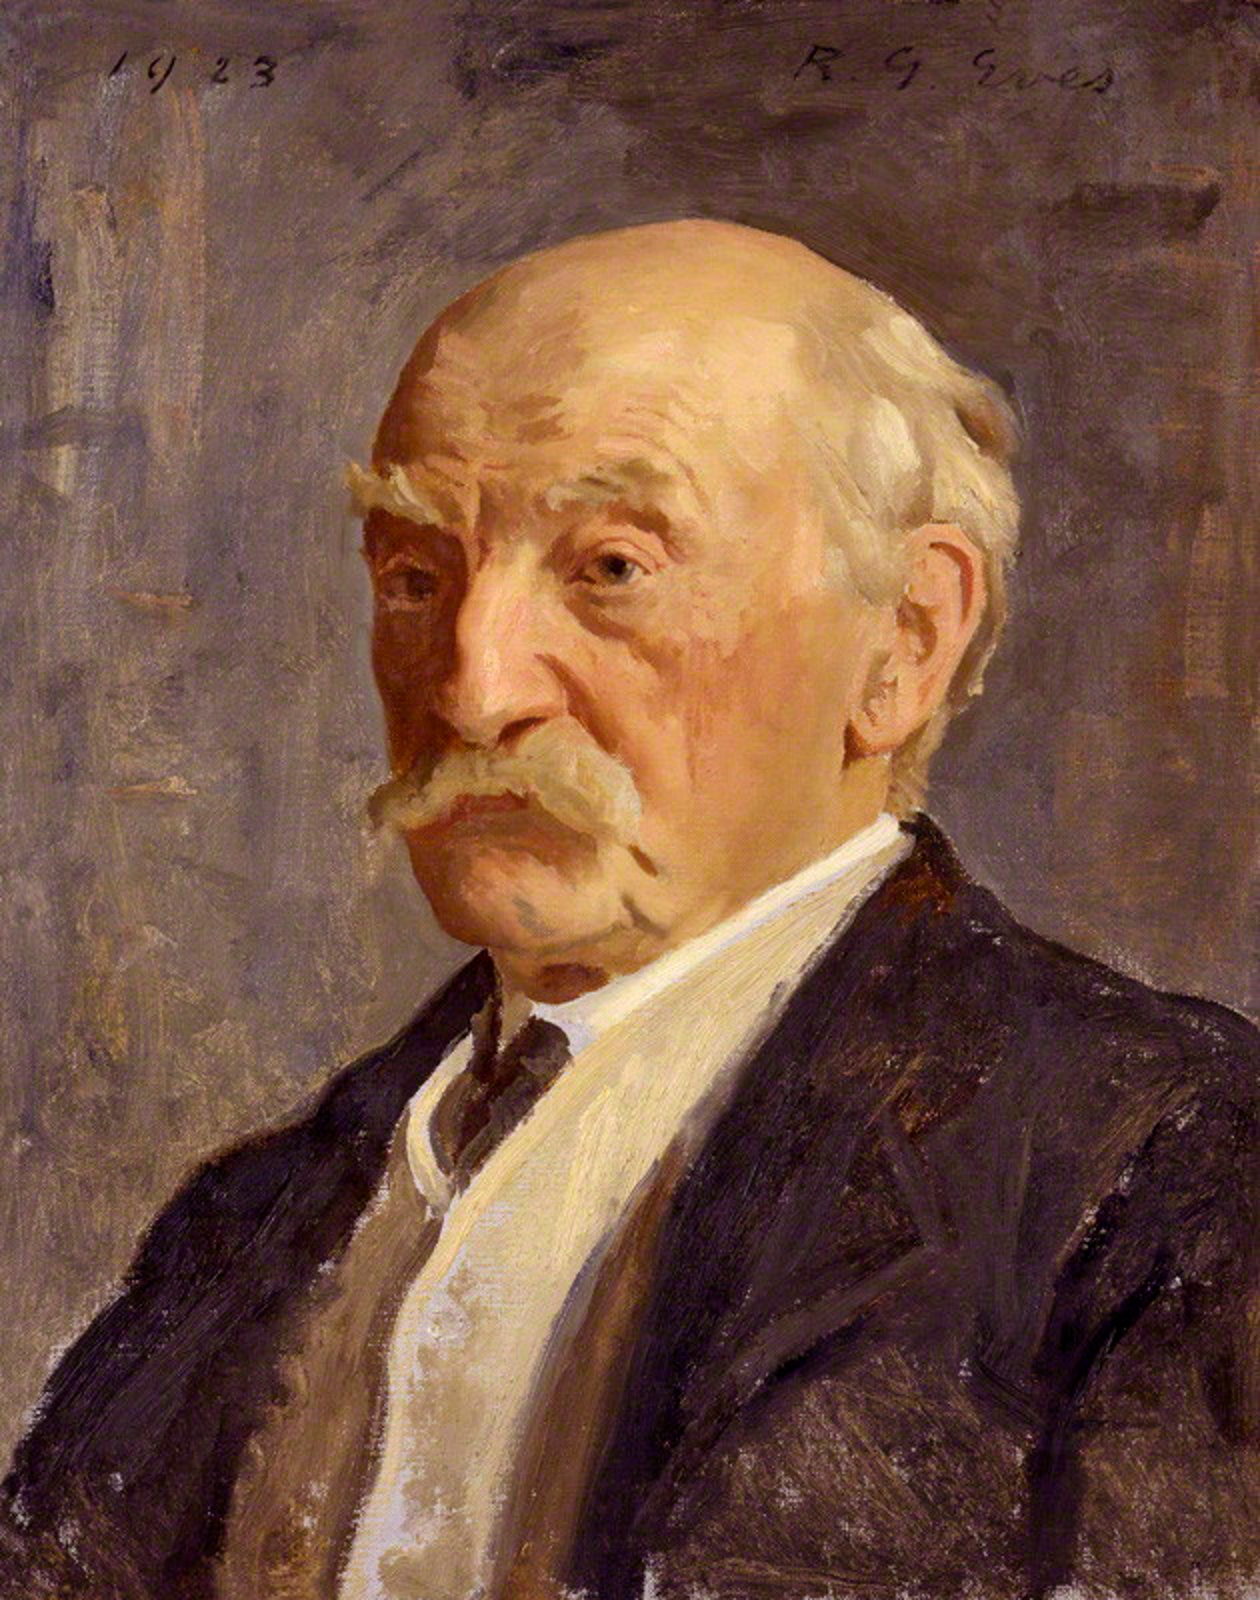 the voice thomas hardy Discuss and explain the rhyme scheme of the poemthe voice by thomas hardy 1 educator answer explain the speaker's feeling in the last stanza of the poem the voice by thomas hardy, and the.